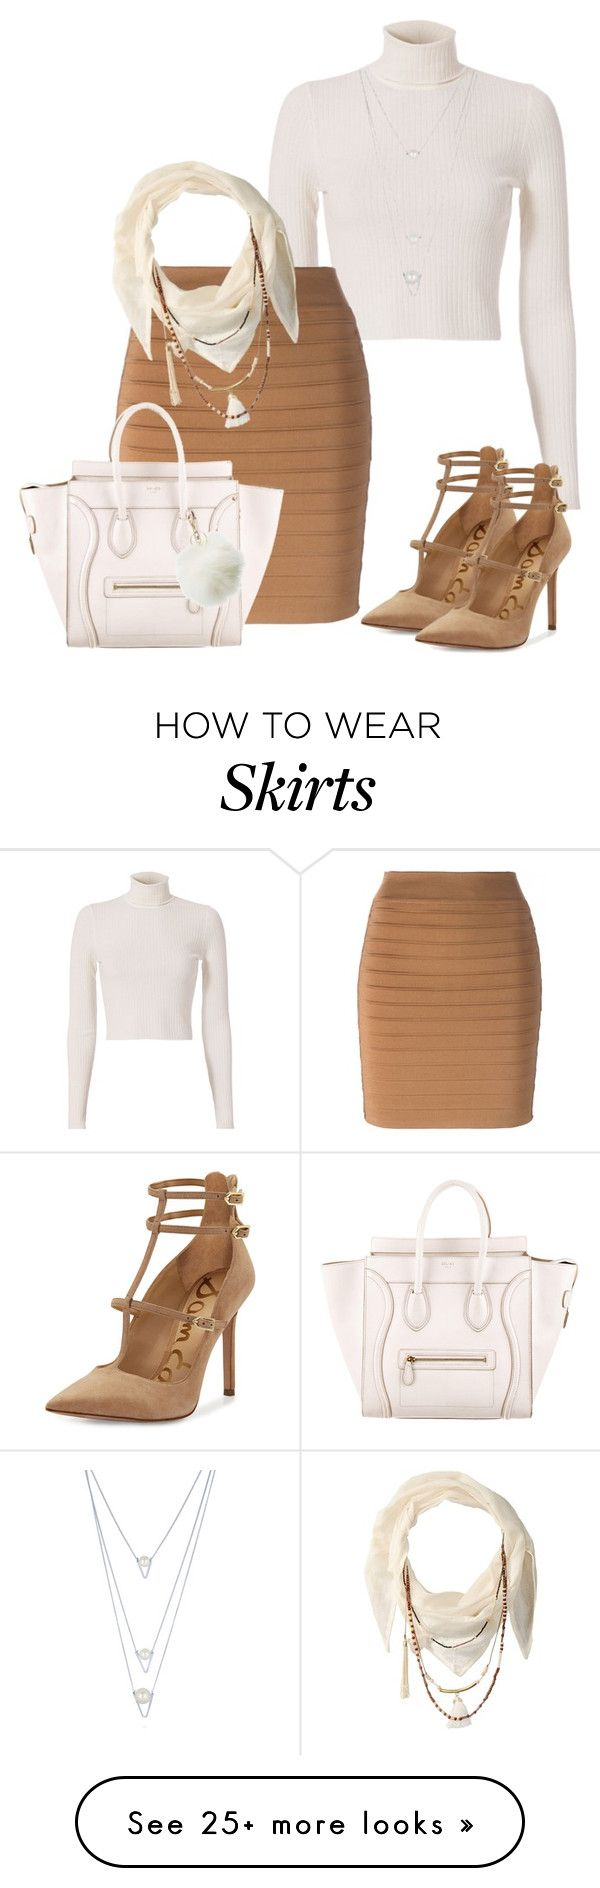 """""""Short Skirt for Fall #3"""" by ashleydawn2 on Polyvore featuring A.L.C., Balmain, Sam Edelman, CÉLINE, BCBGeneration, Charlotte Russe, BERRICLE, Fall and shortskirt"""